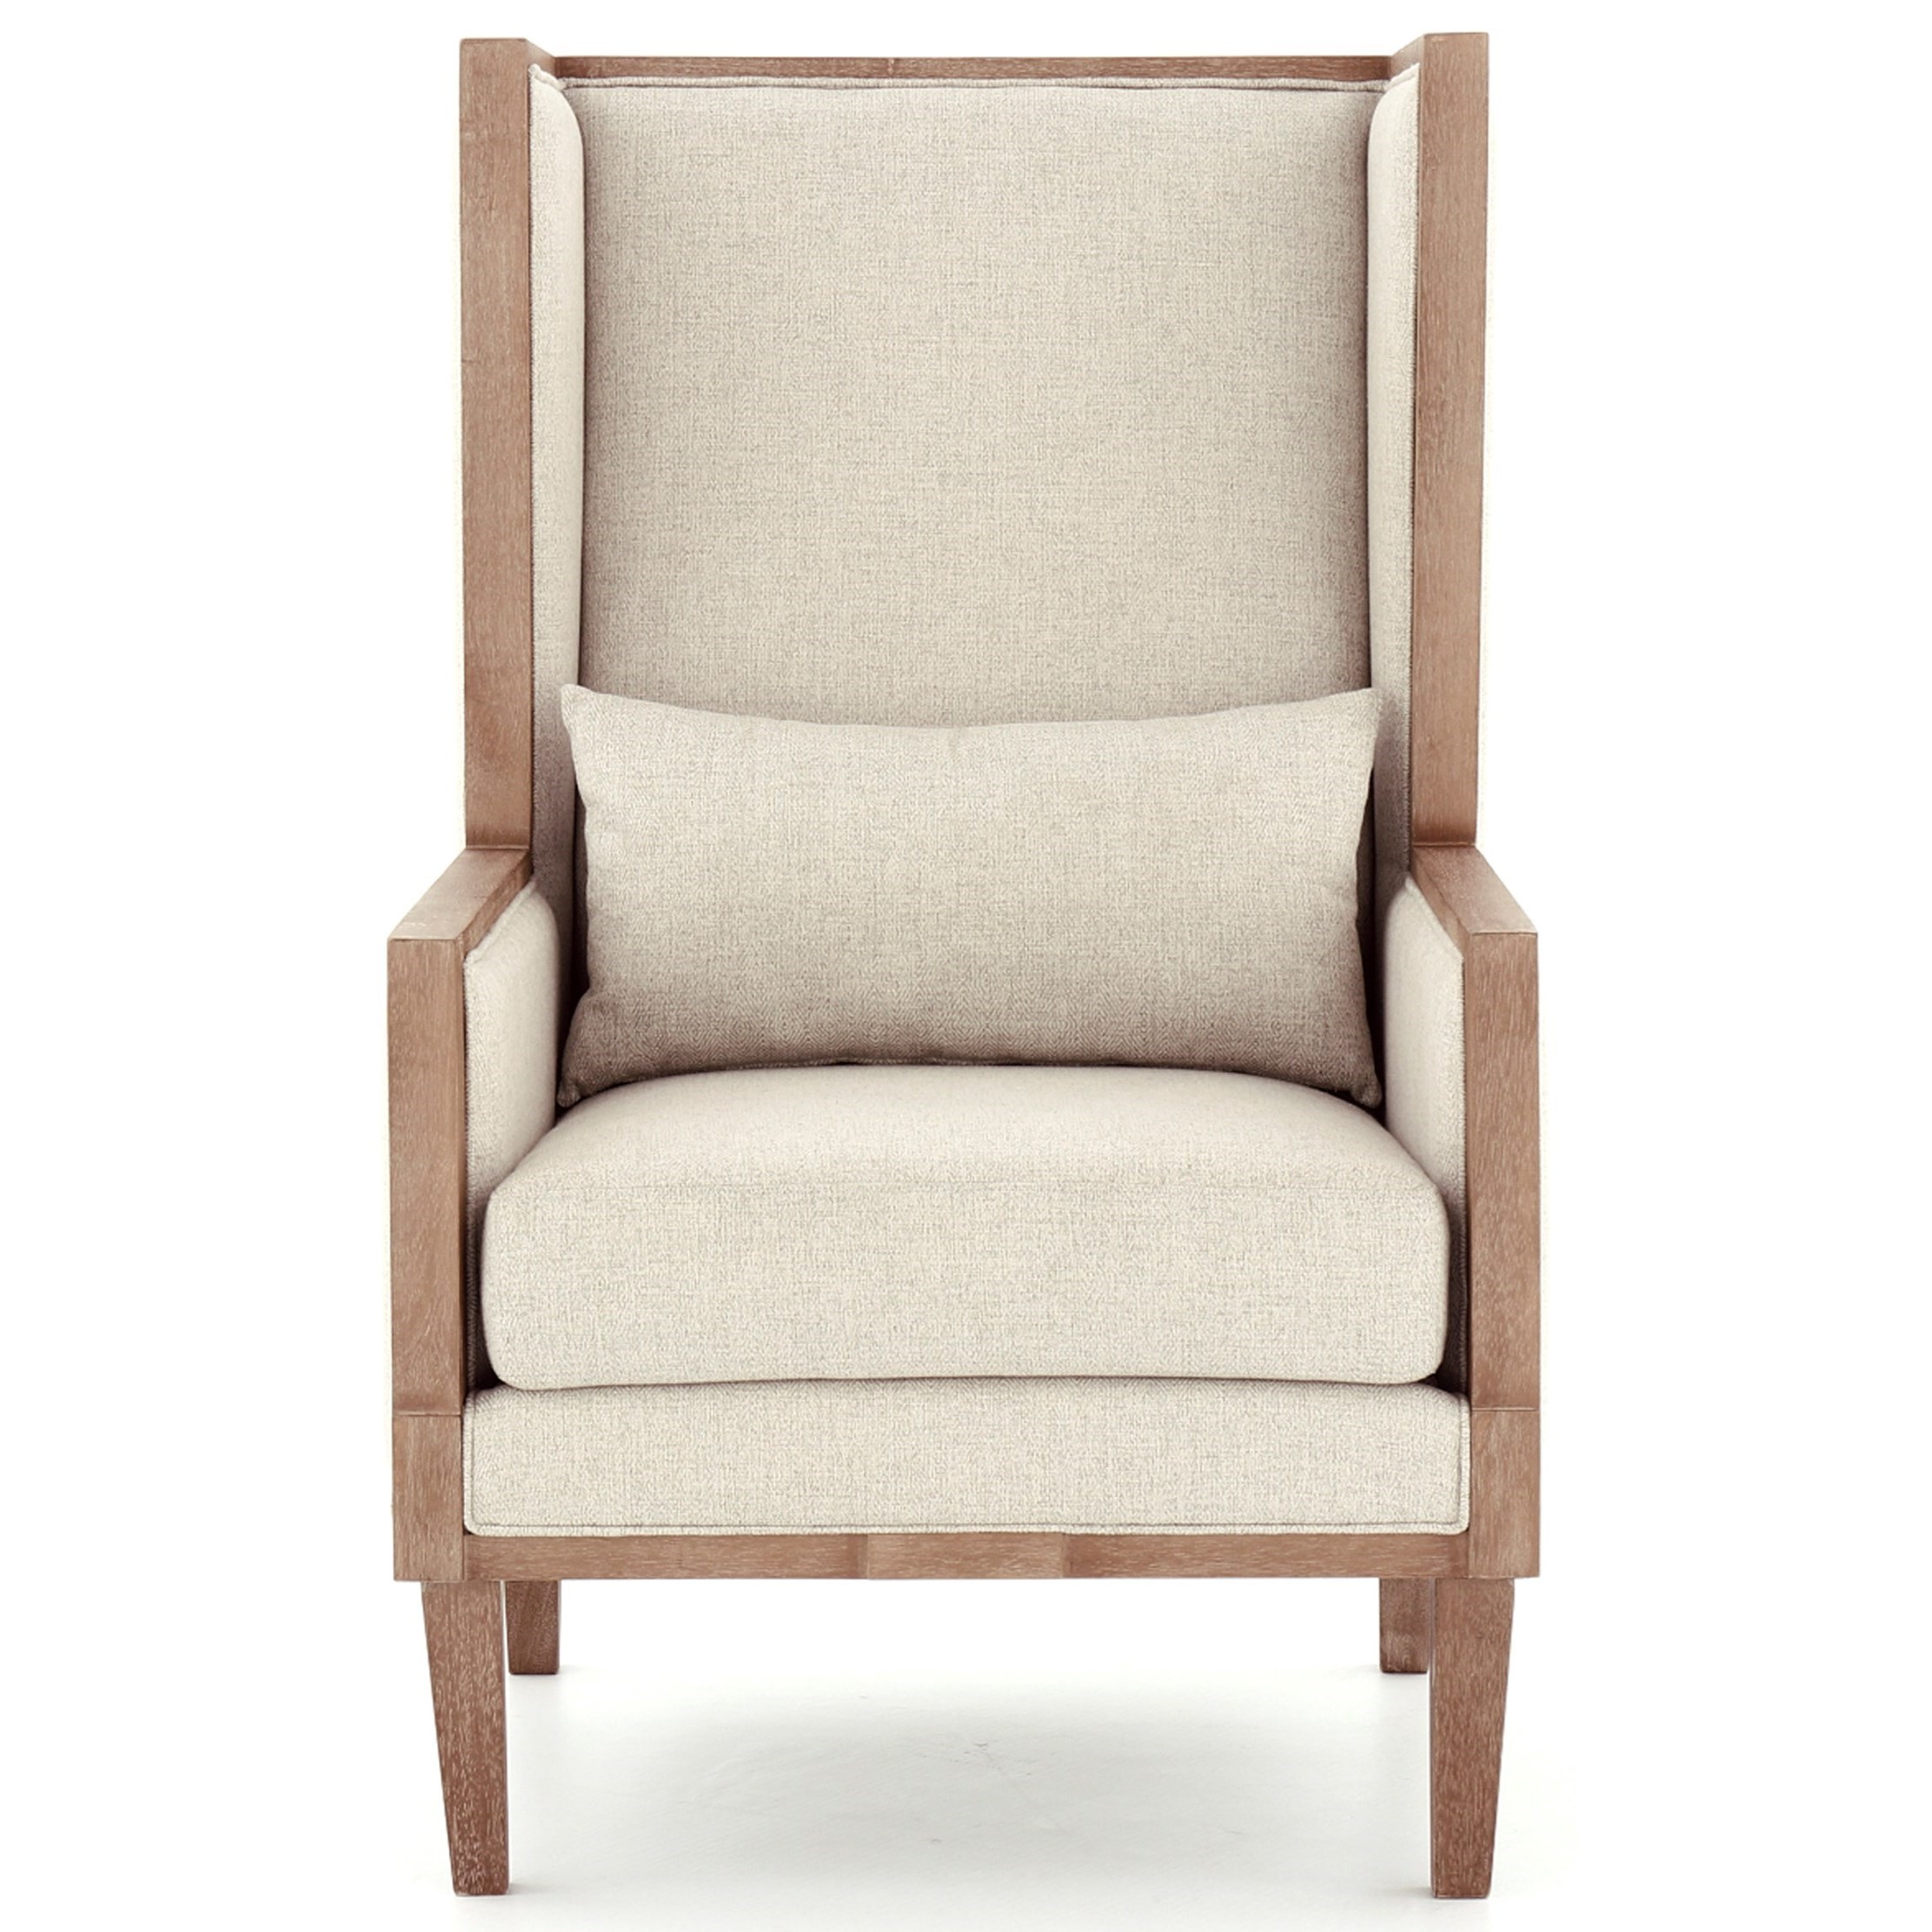 Avila Accent Chair by Signature Design by Ashley at Value City Furniture